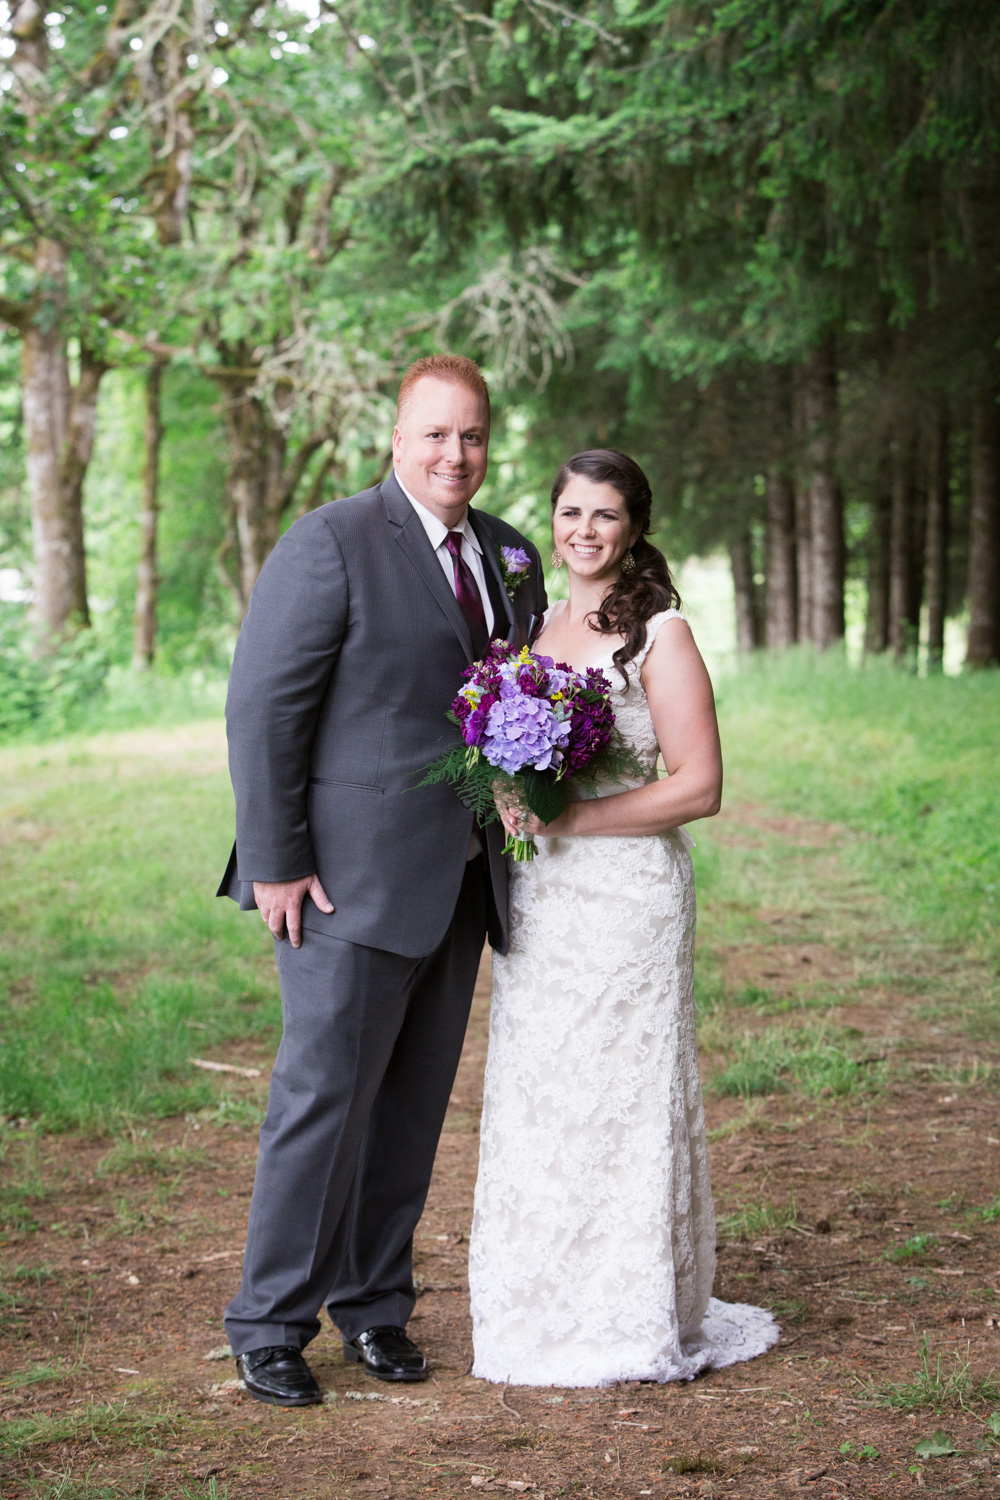 Dallas Oregon Wedding Photography Focal Point Studios-164.jpg